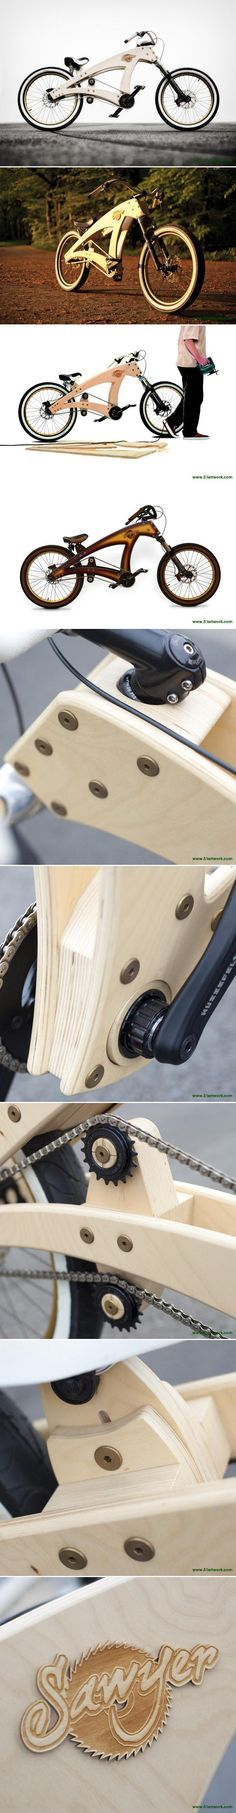 Artist Jurgen Kuipers designed the 'Sawyer', which is a custom made full functional beachcruiser with a beech plywood frame. The bike won an IBDC/IF award handed out during the Taipei Cycle Show 2013 in Taiwan. http://en.51artwork.com/jurgen-kuipers-sawyer-beachcruiser/